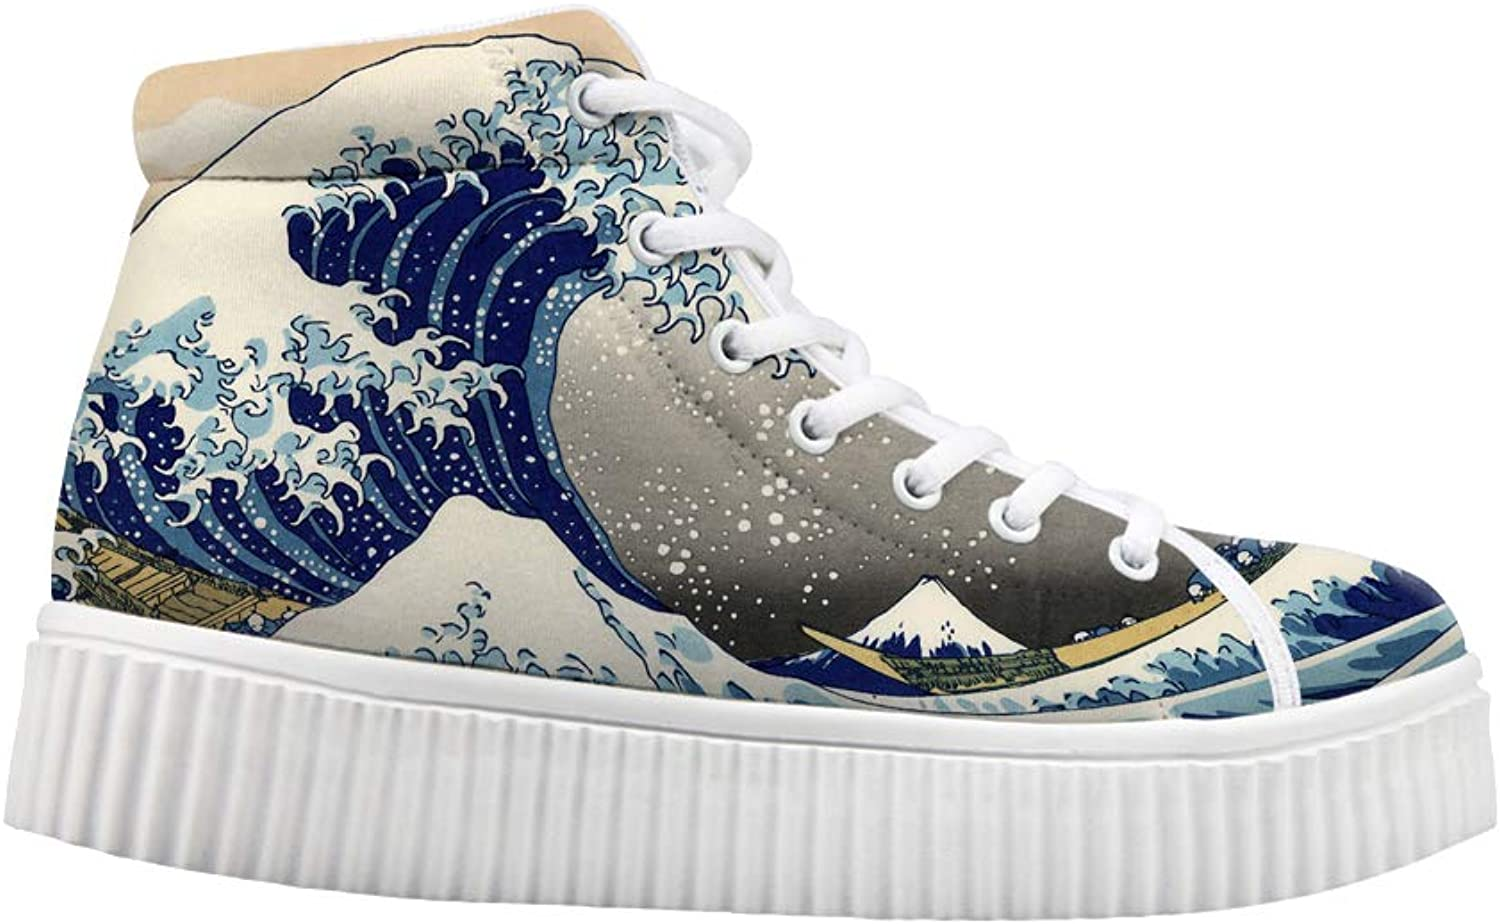 Owaheson Platform Lace up Sneaker Casual Chunky Walking shoes High Top Women The Great Wave of Kanagawa